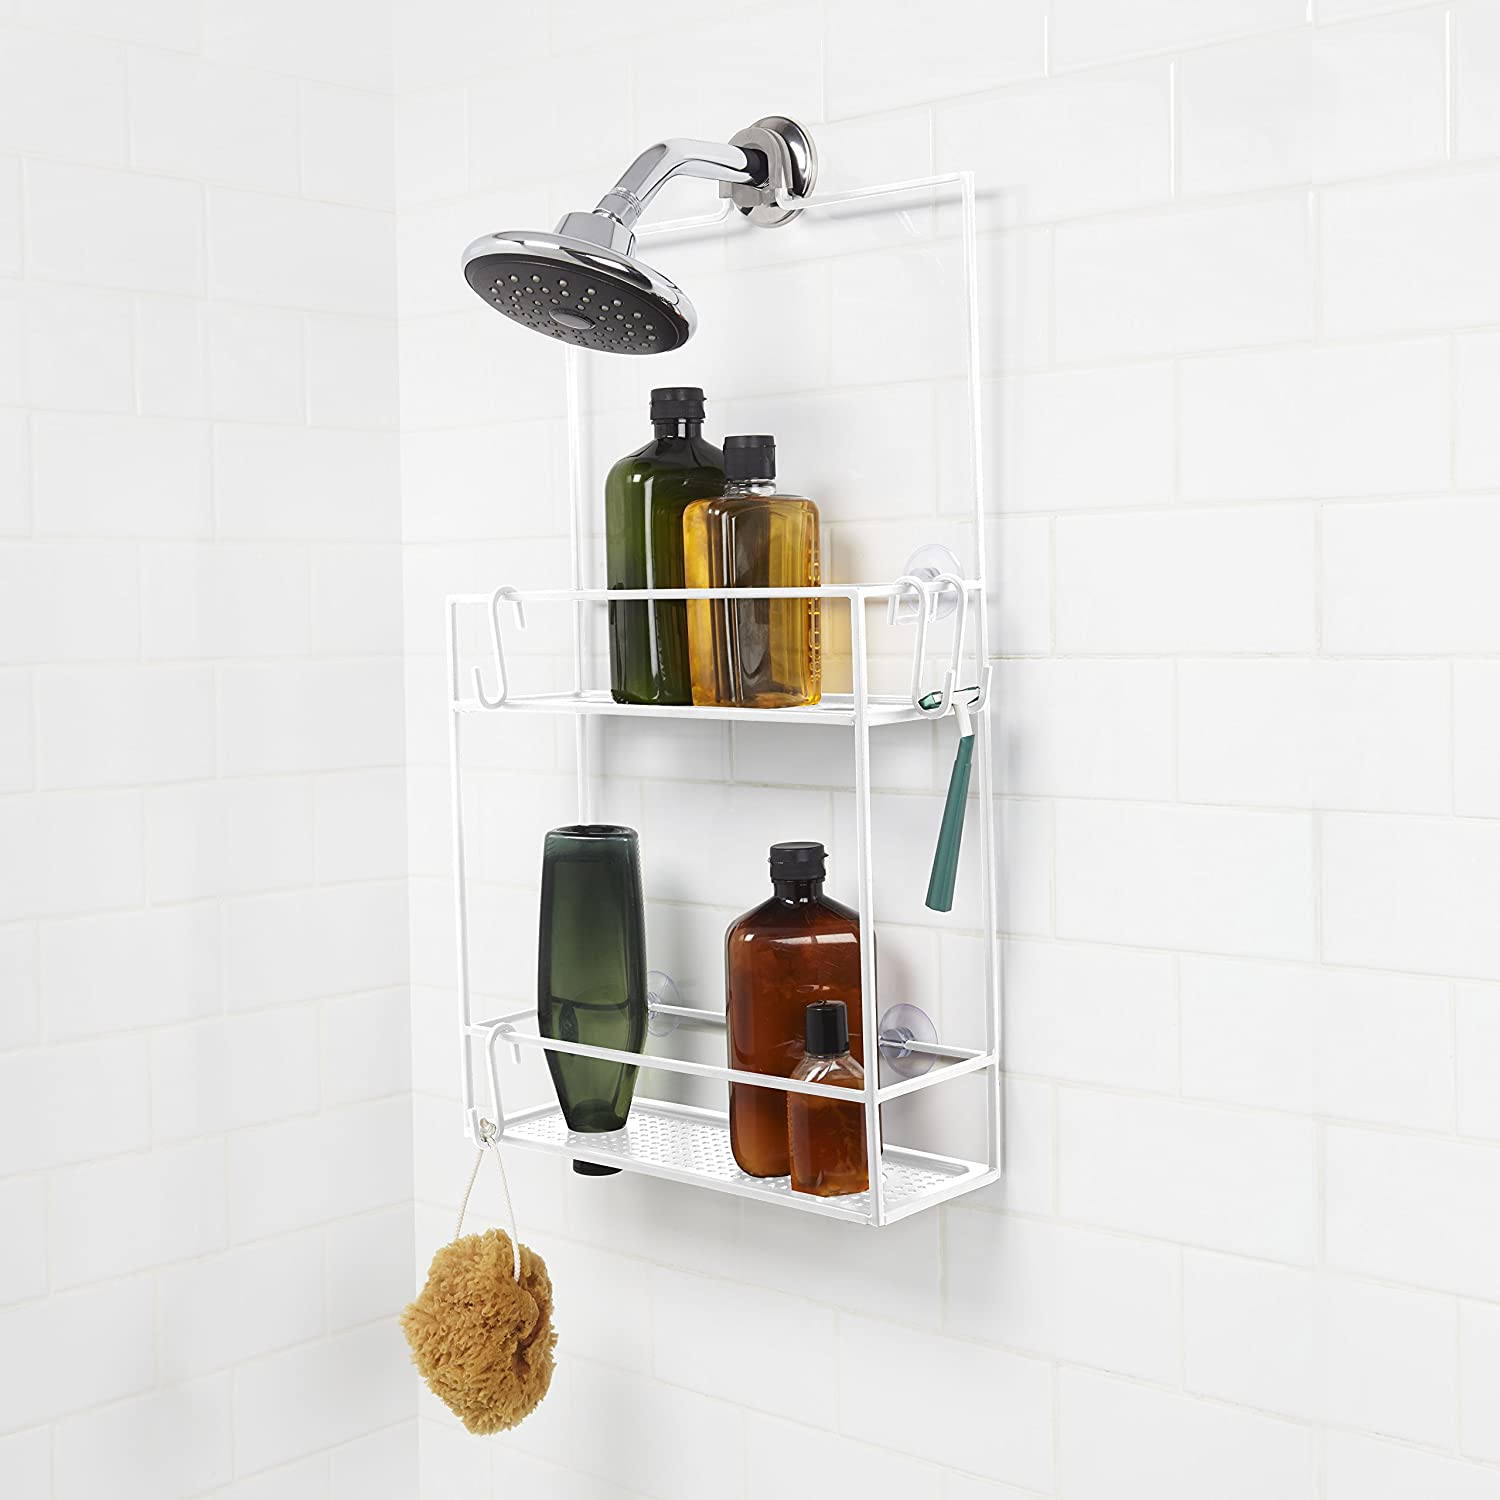 Amazon.com: Umbra Cubiko Shower Caddy, Black: Home & Kitchen